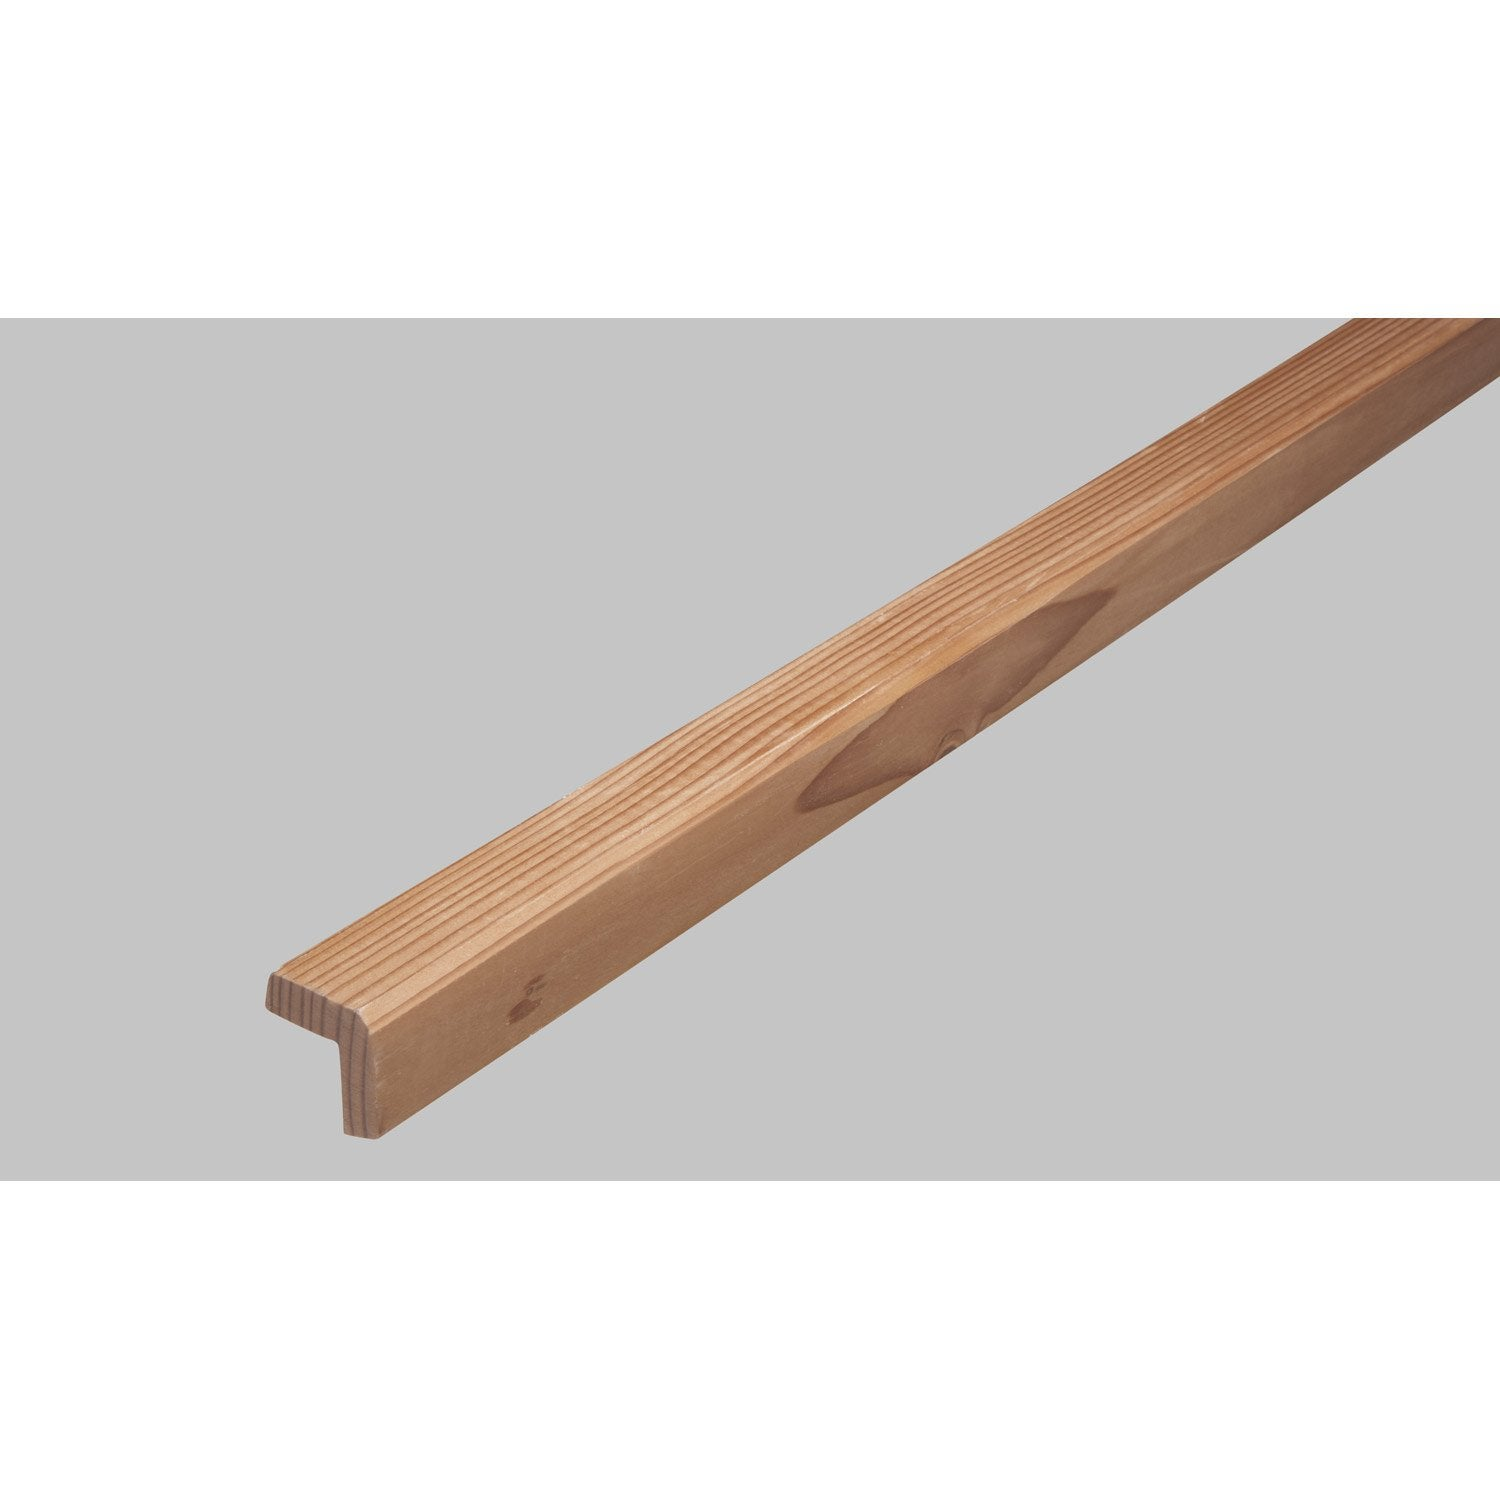 Baguette d angle en douglas long 250cm section 46x46mm